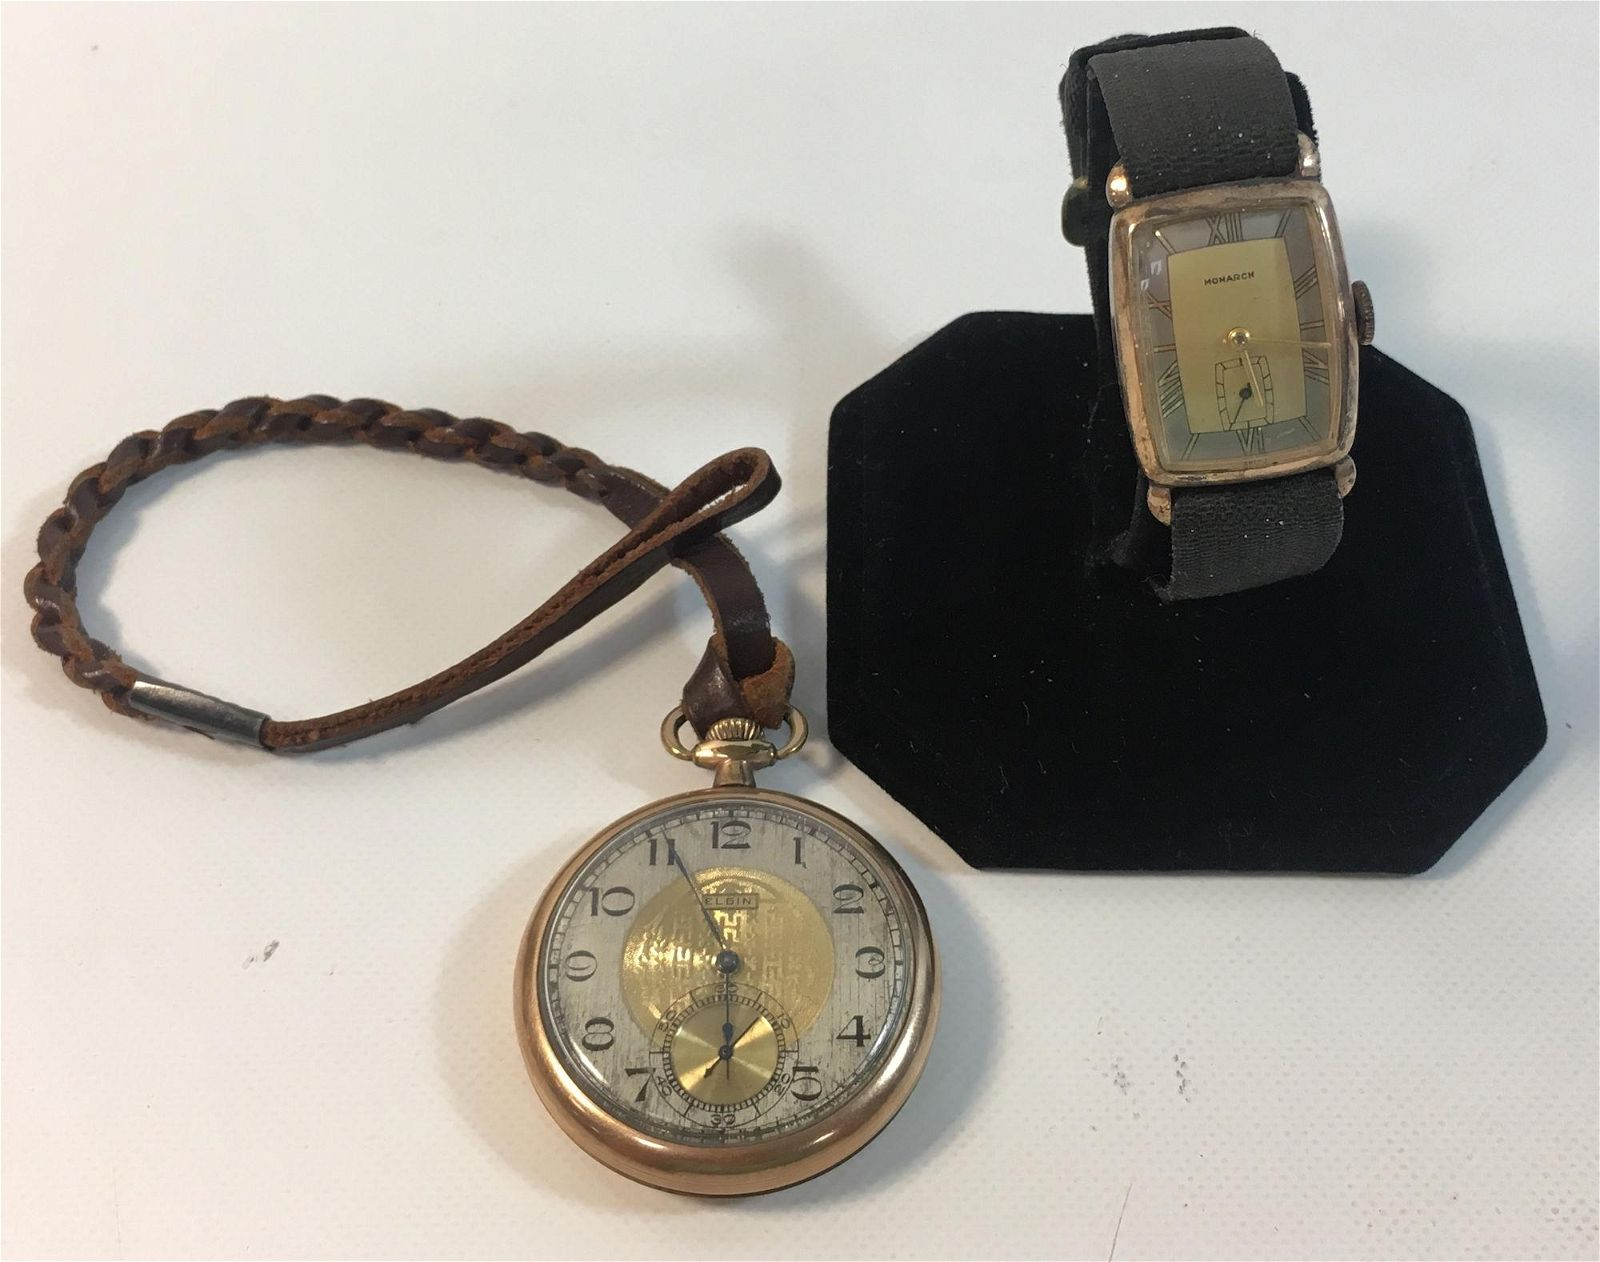 TWO VINTAGE WATCHES